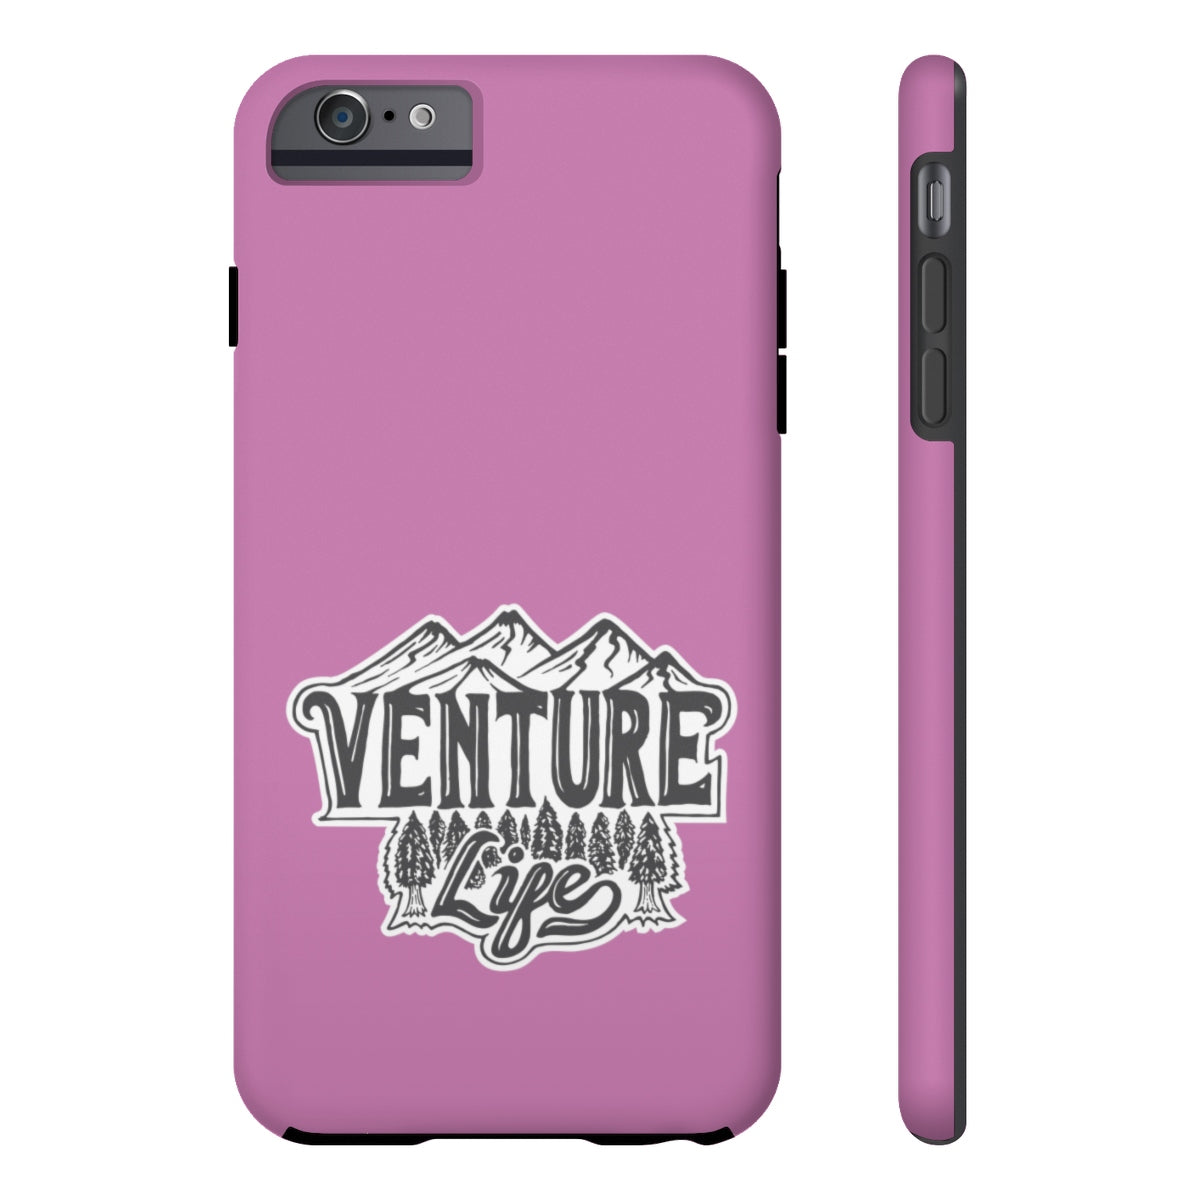 Rugged Venture Phone Case